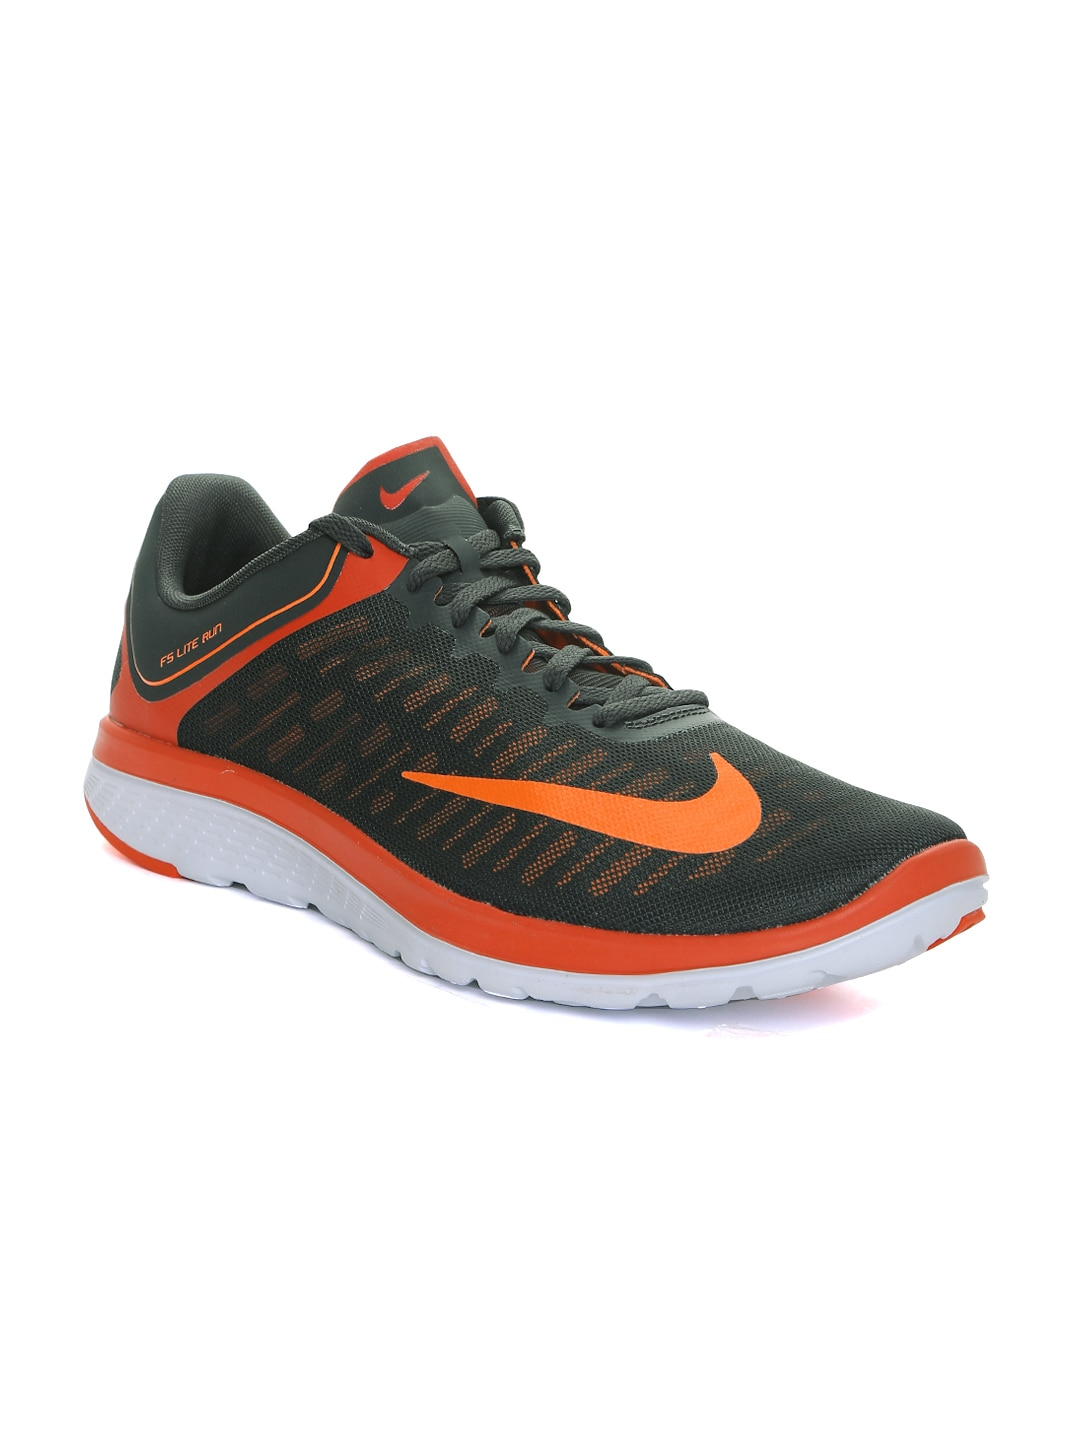 Cheap Nike fs lite run 3 lava glow Men 56% Off For Sale